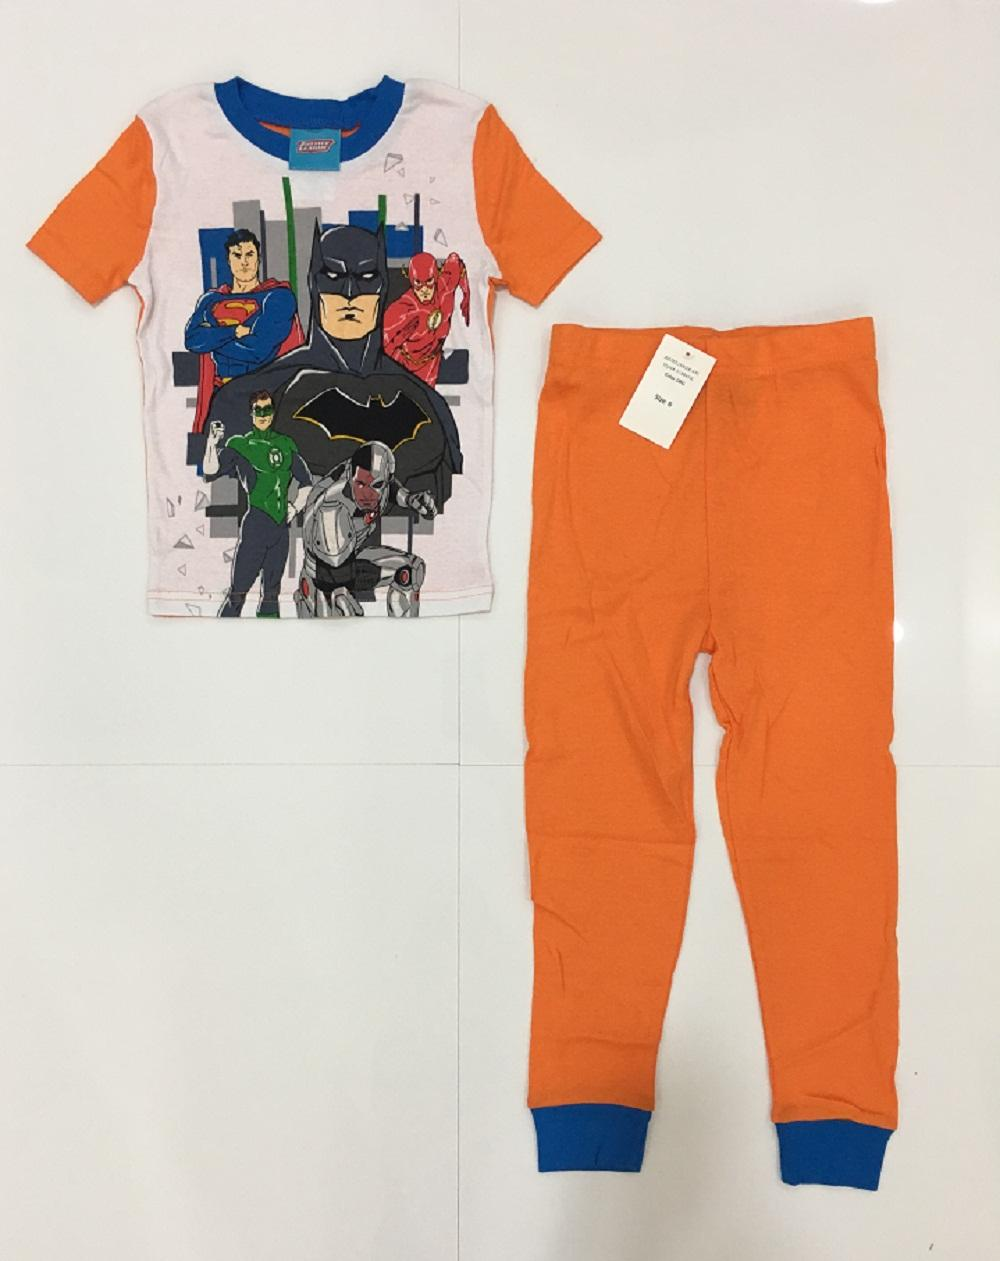 Justice League Cotton Pajama Set Of 2 By Discount Store.